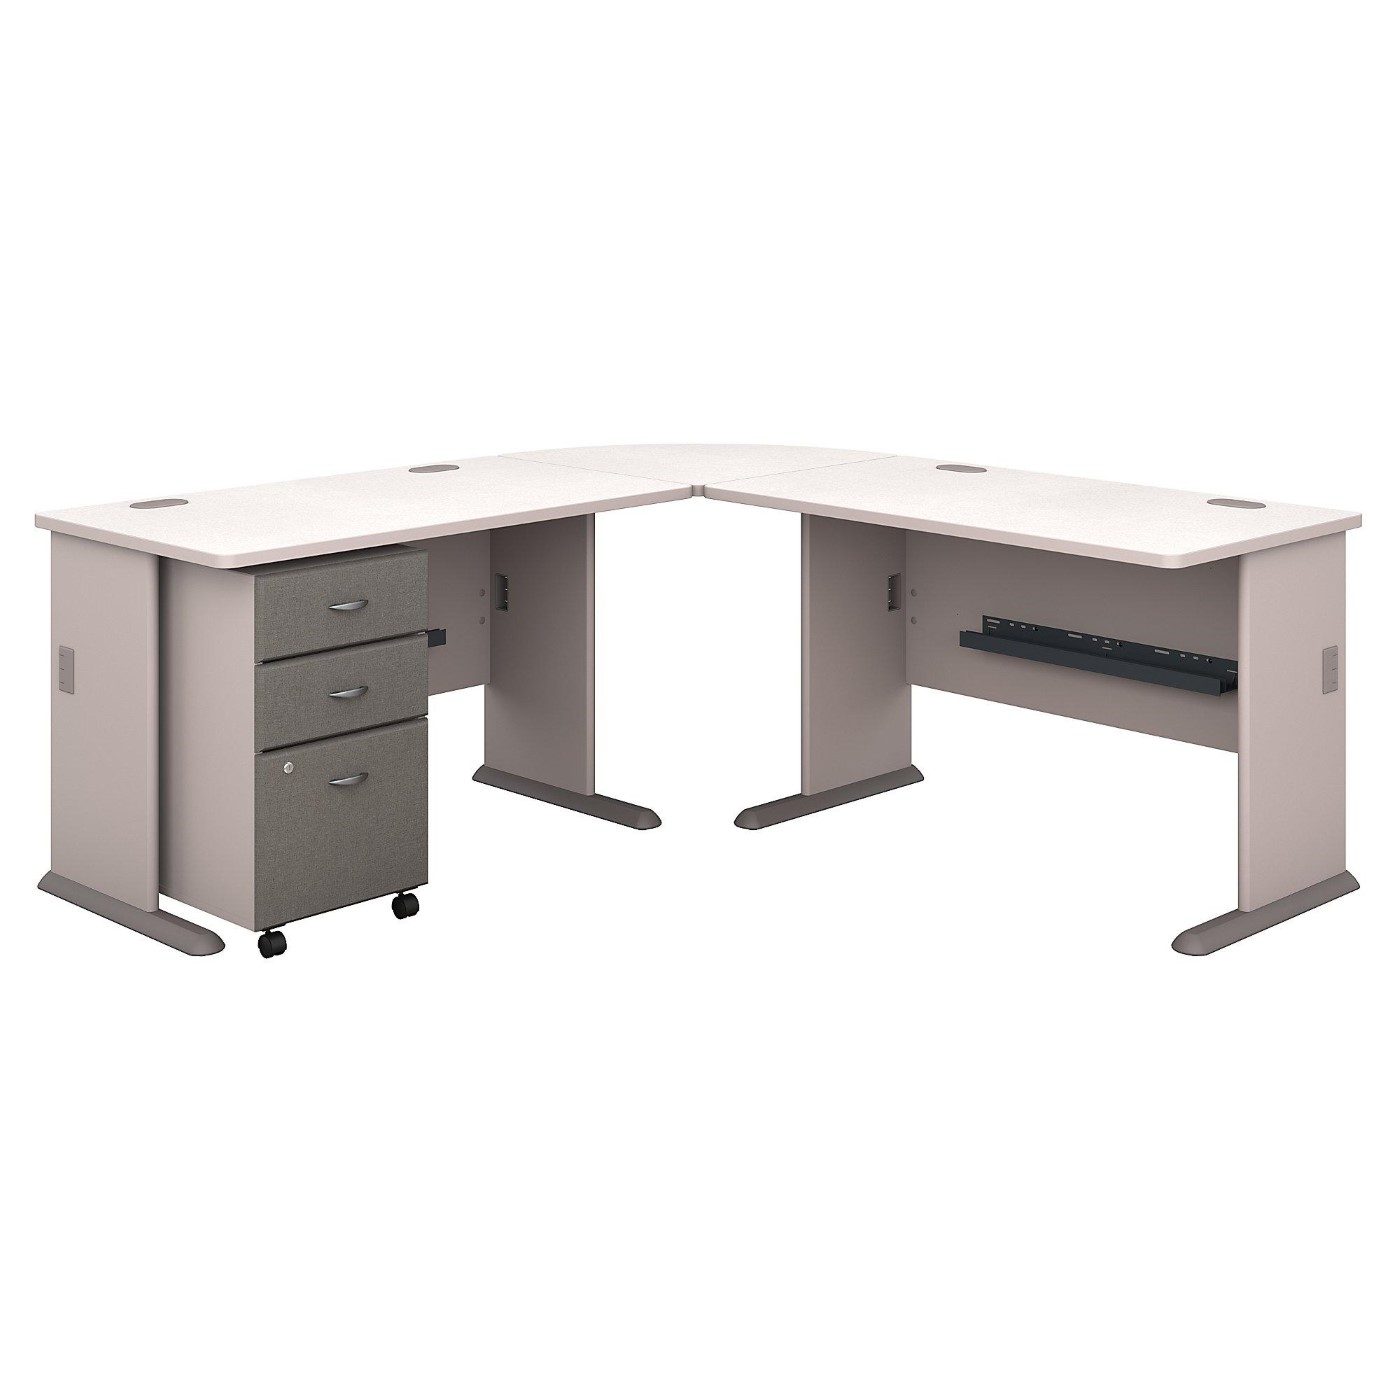 BUSH BUSINESS FURNITURE SERIES A 75W X 75D L SHAPED DESK WITH MOBILE FILE CABINET. FREE SHIPPING</font></b></font></b>&#x1F384<font color=red><b>ERGONOMICHOME HOLIDAY SALE - ENDS DEC. 17, 2019</b></font>&#x1F384